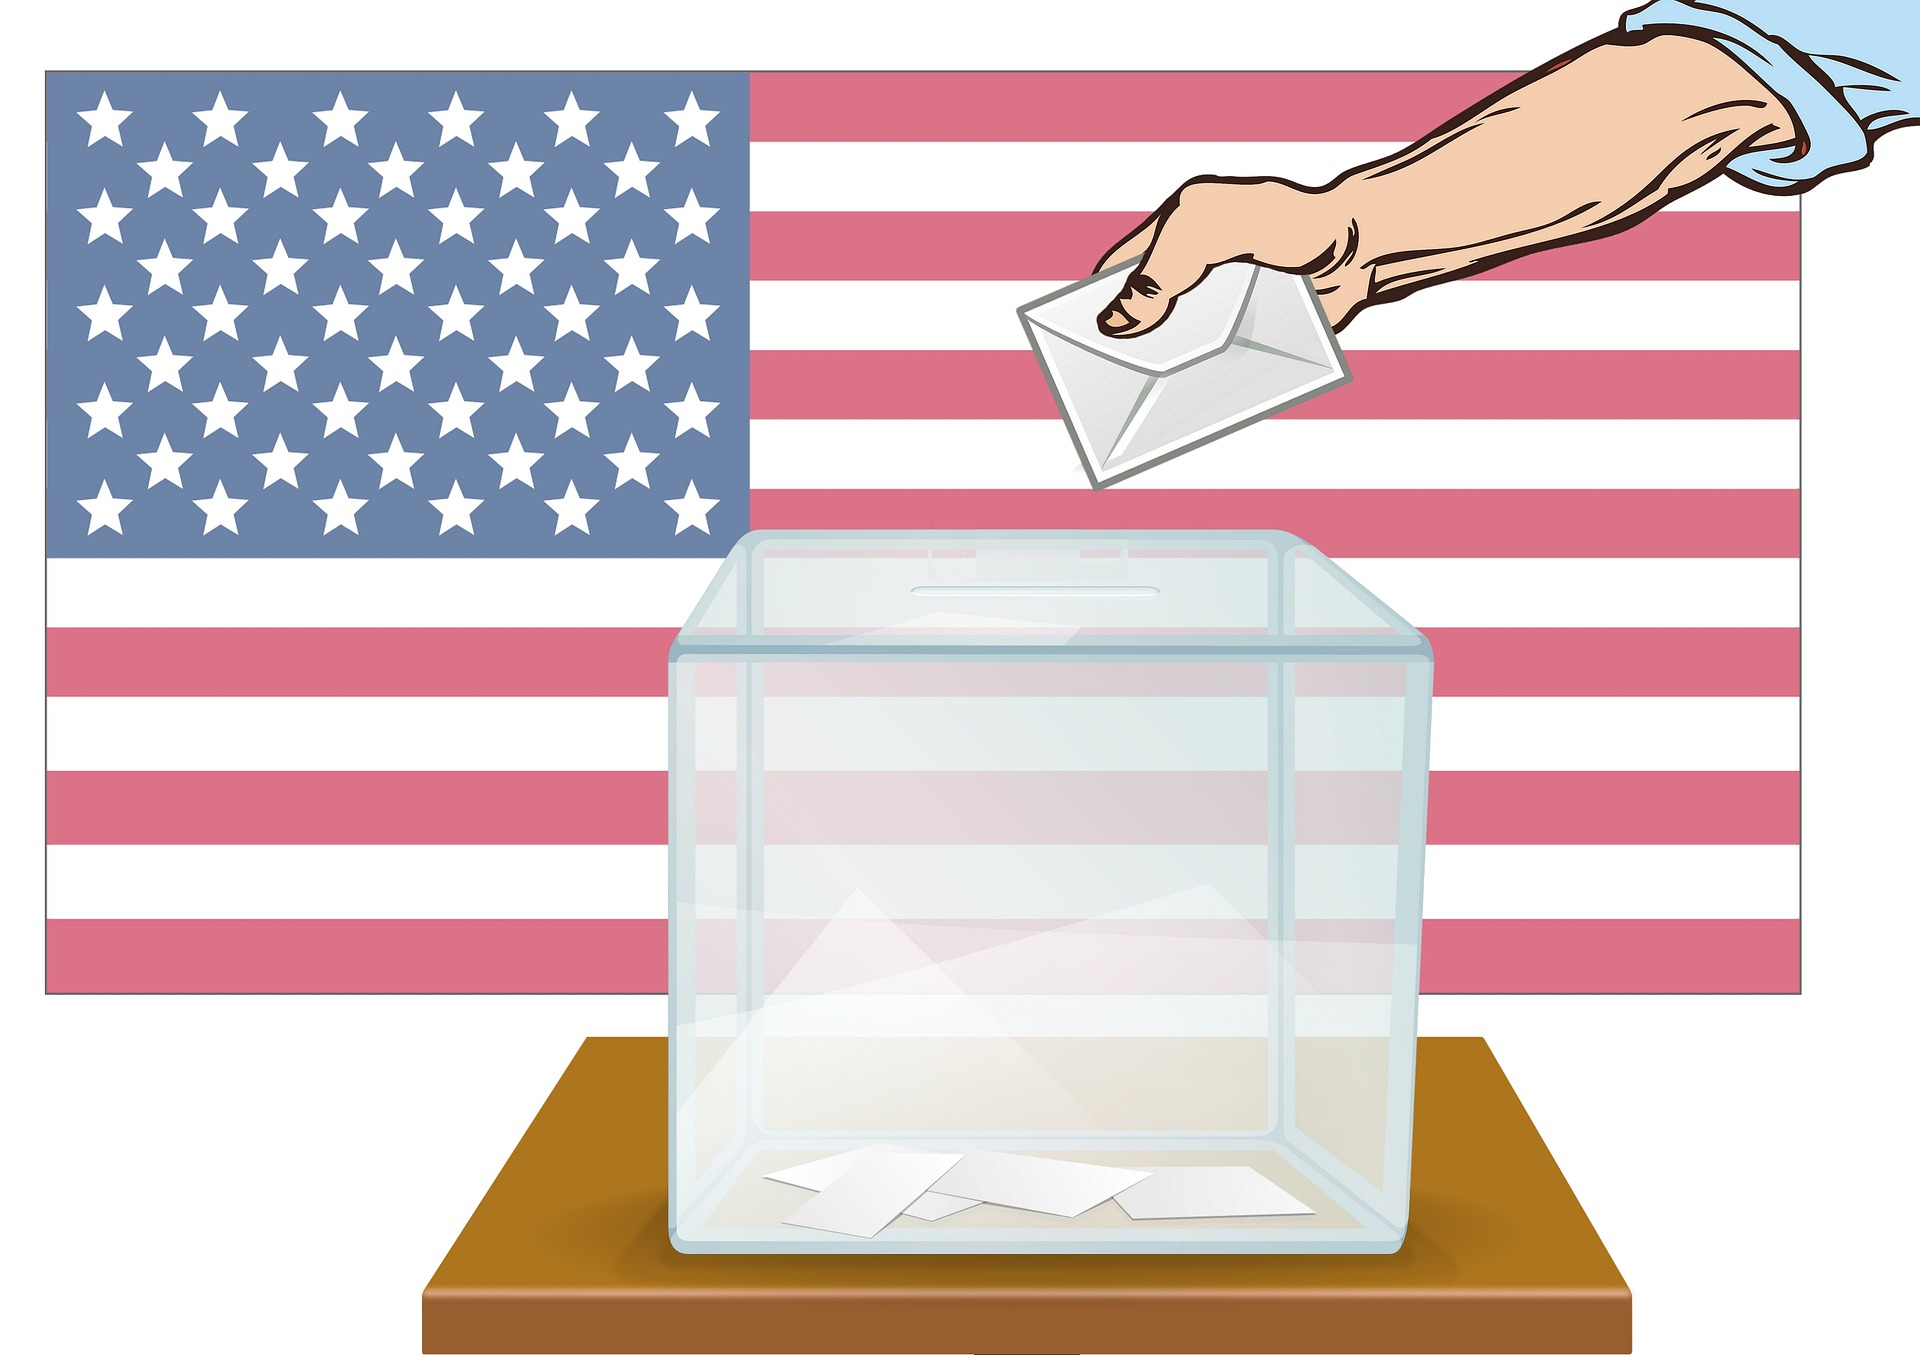 illustration of a hand putting a ballot in a box with an American flag in the background